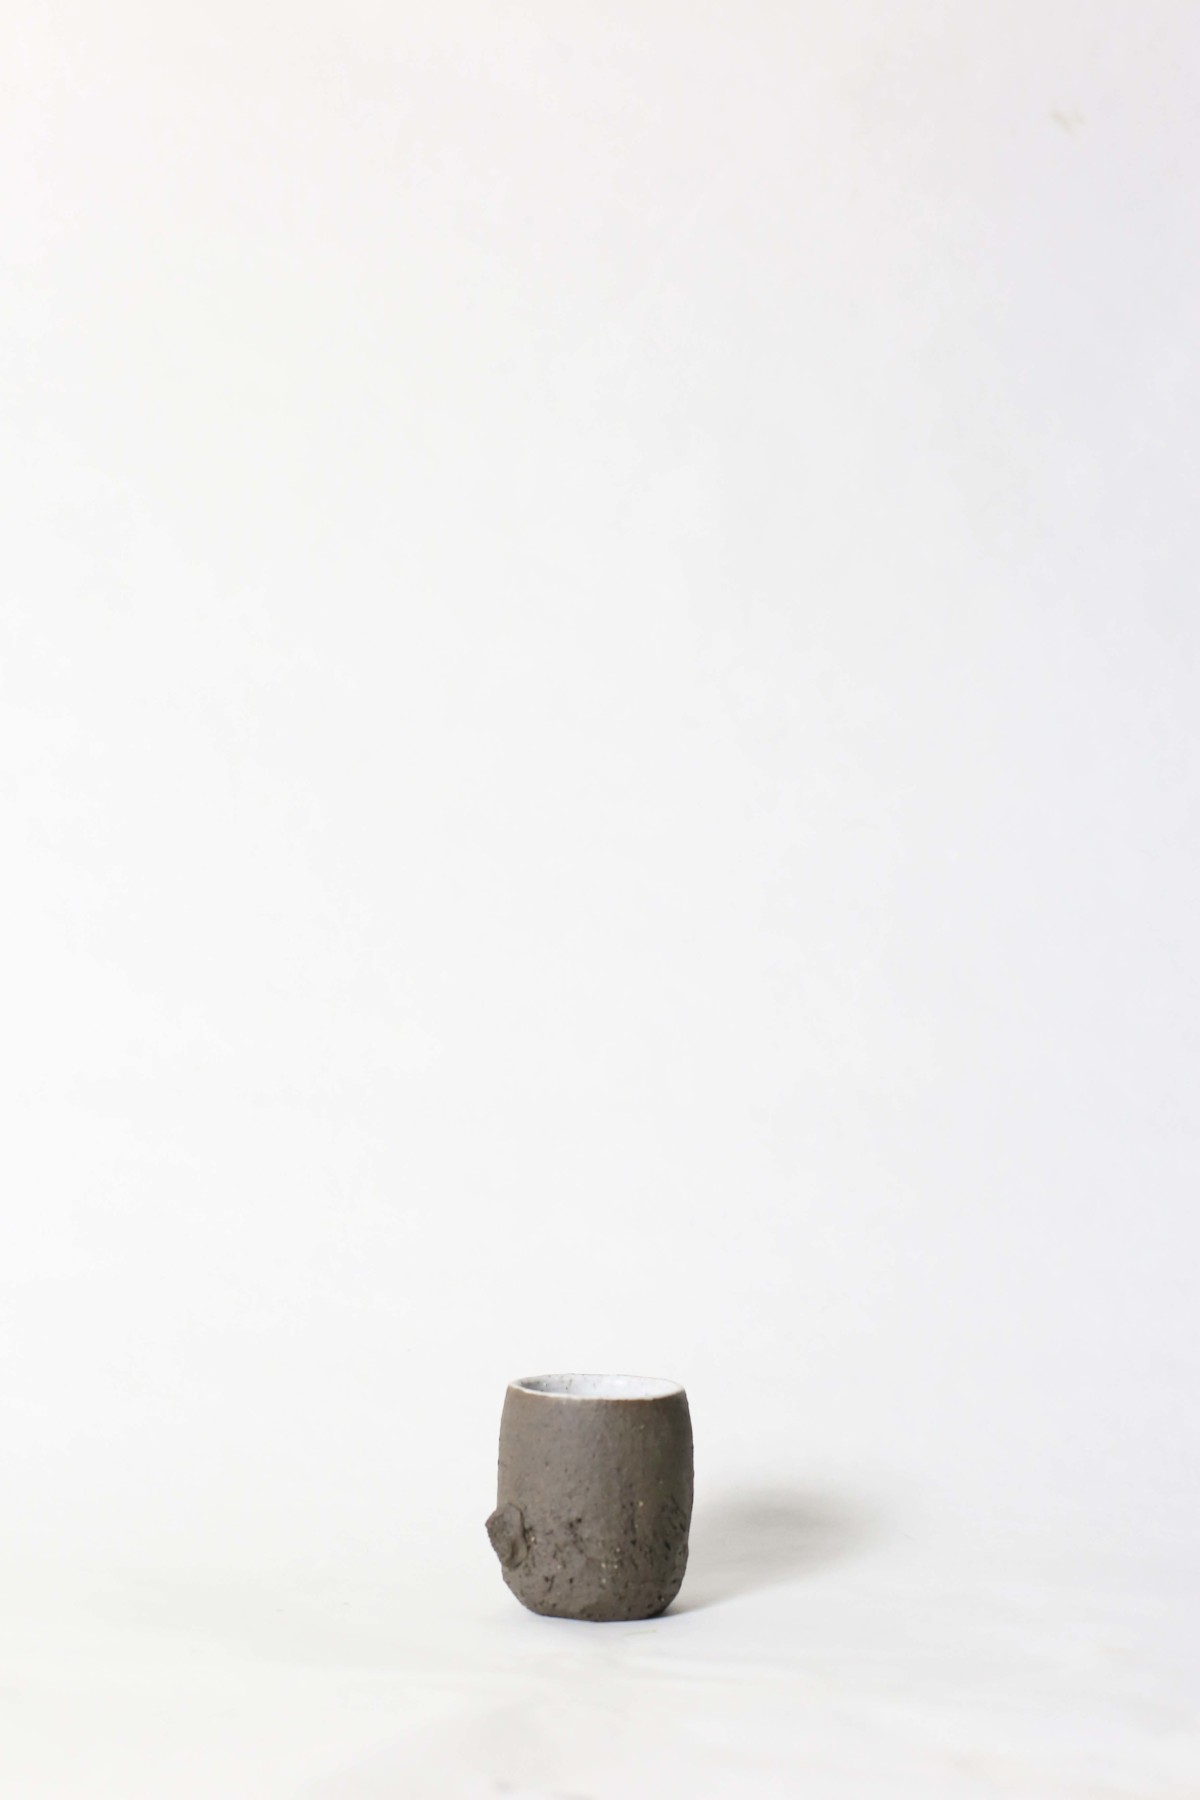 terra nigra clay cup with a lump below on a white background 1